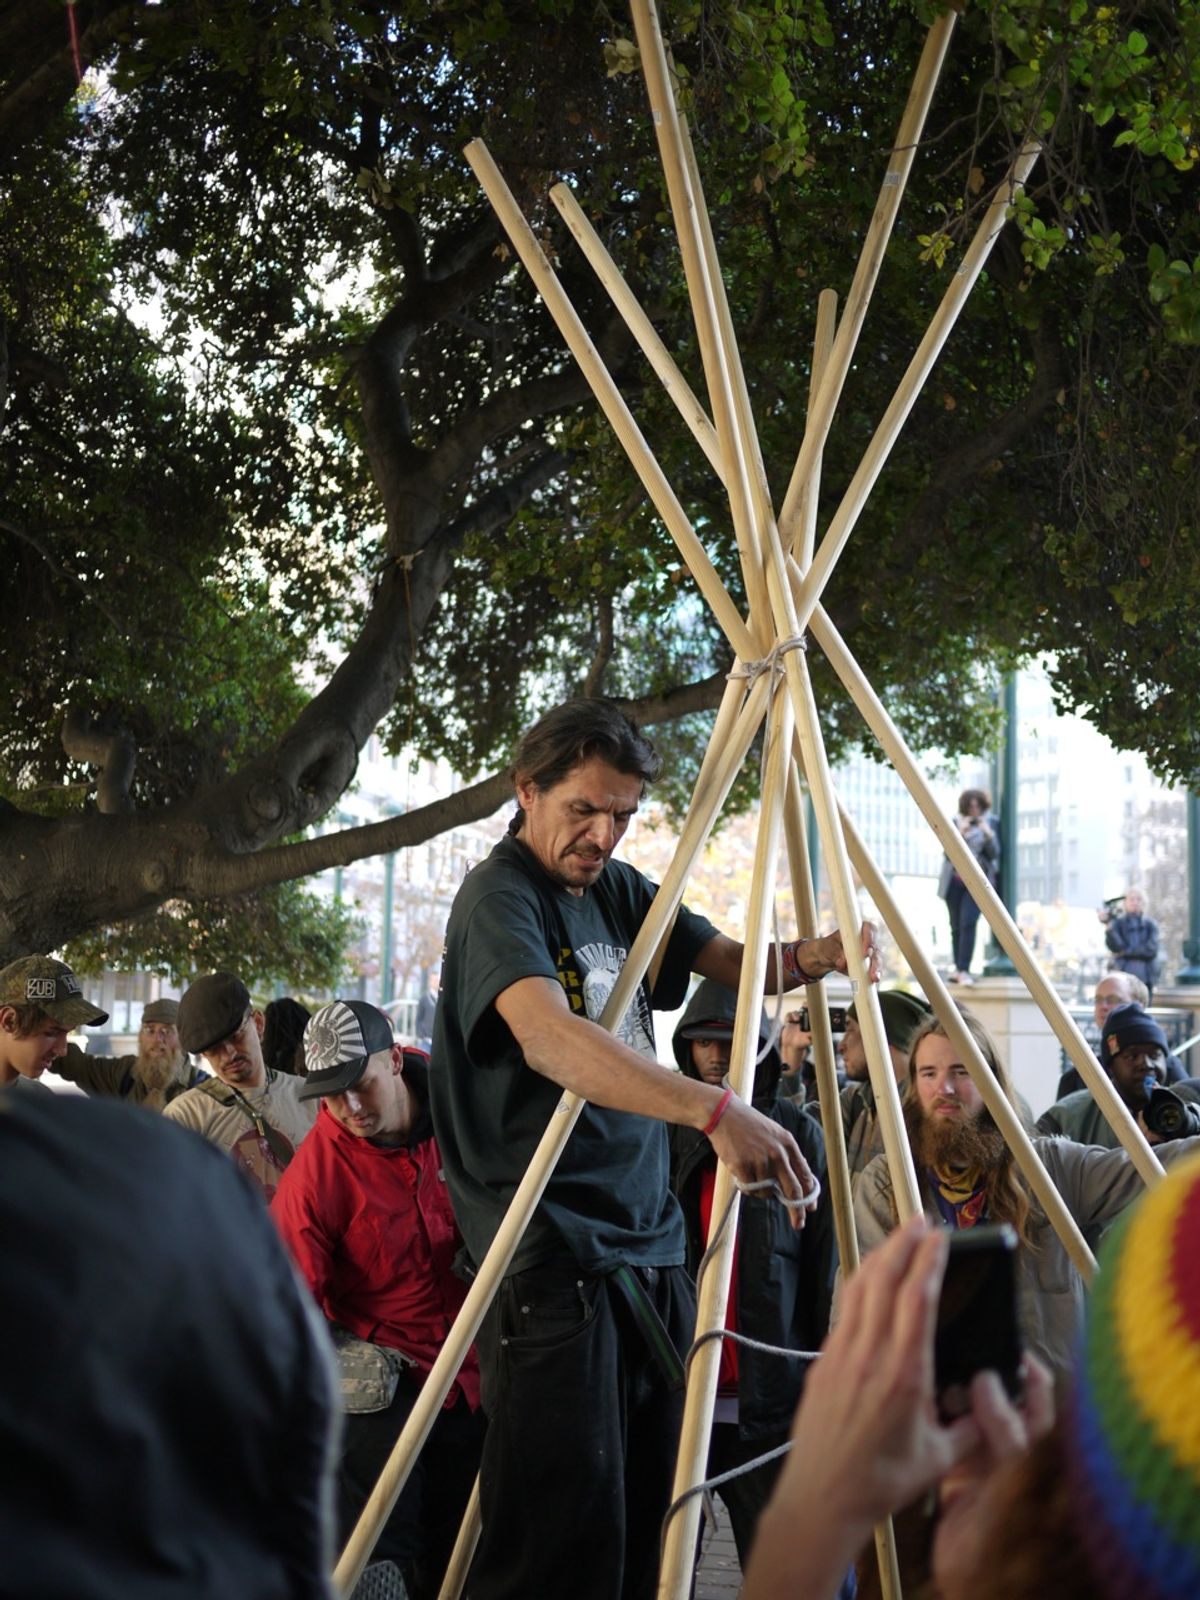 A teepee grows in Oakland     (Chris Colin)